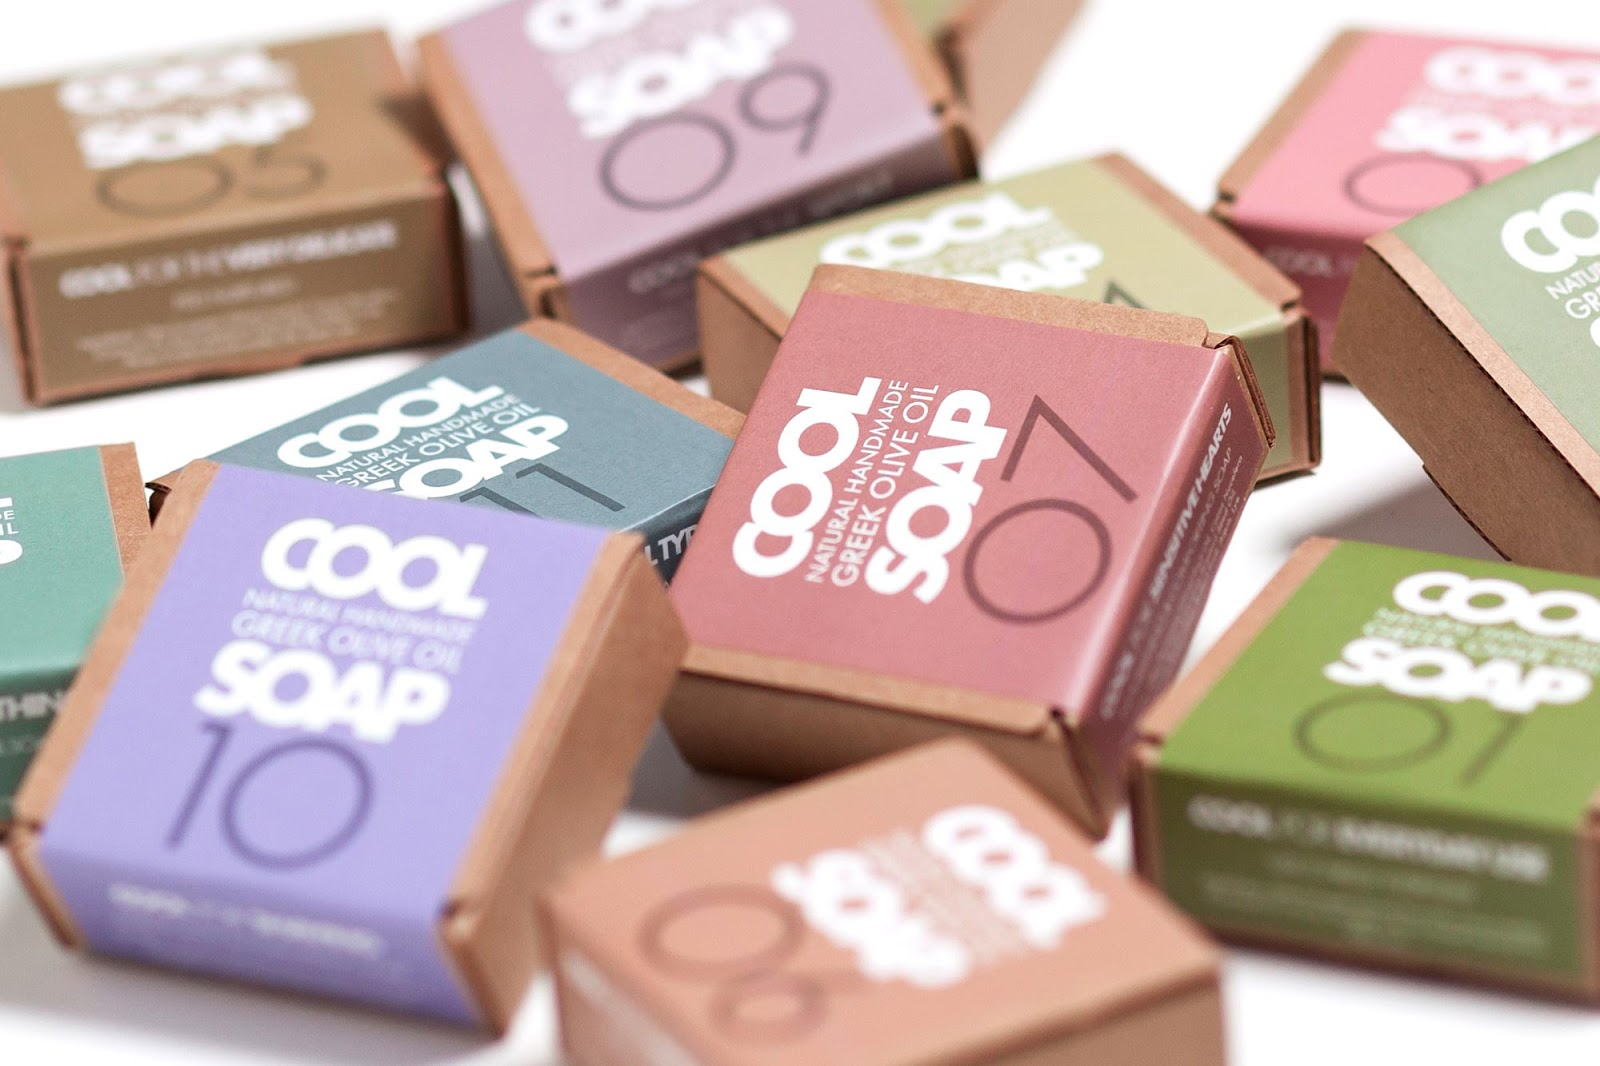 Cool Soap on Packaging of the World - Creative Package Design Gallery